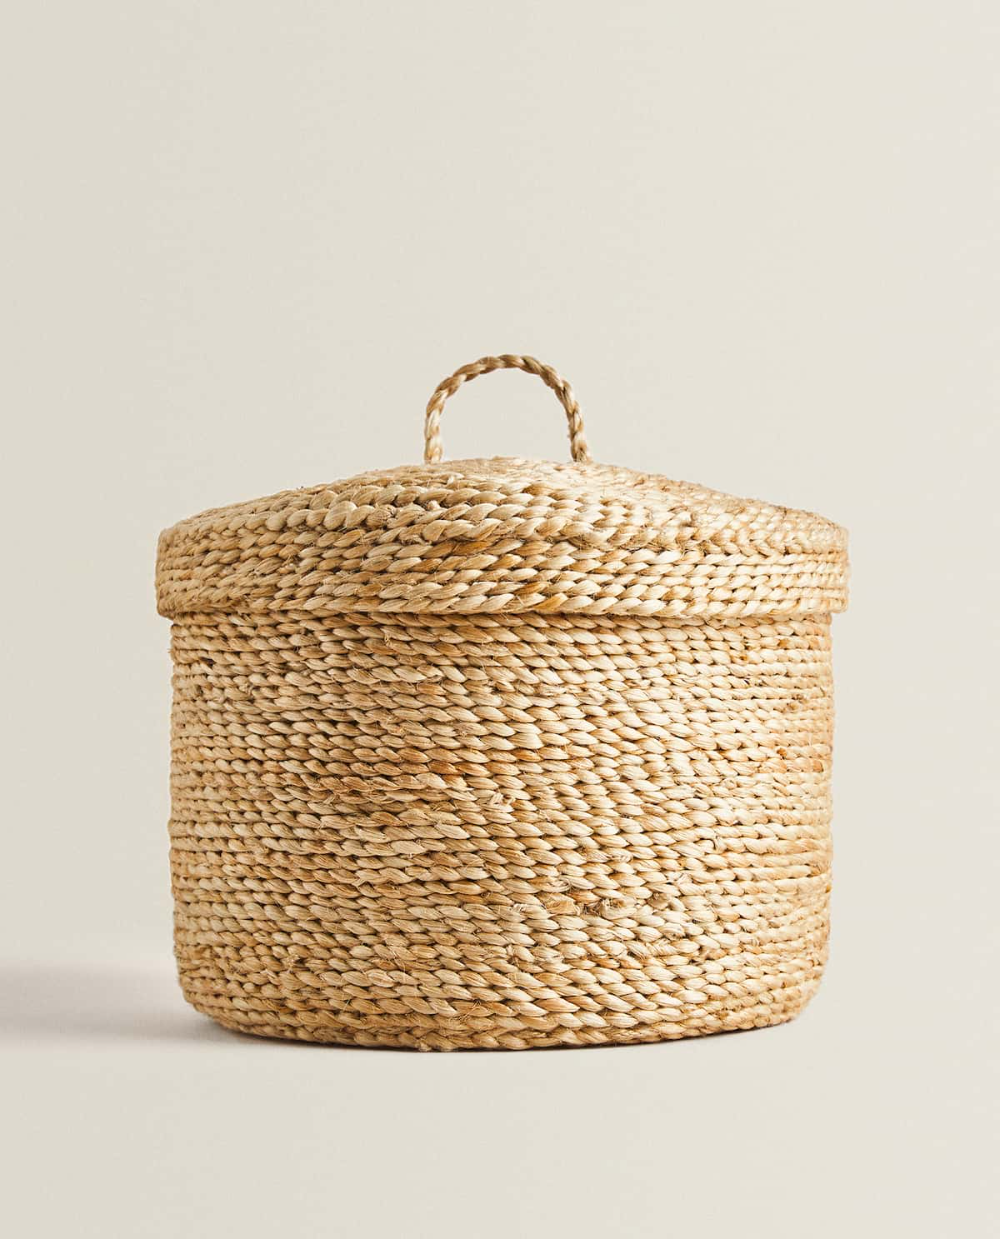 Round Basket With Lid In 2020 Wicker Basket With Lid Lidded Baskets Round Basket